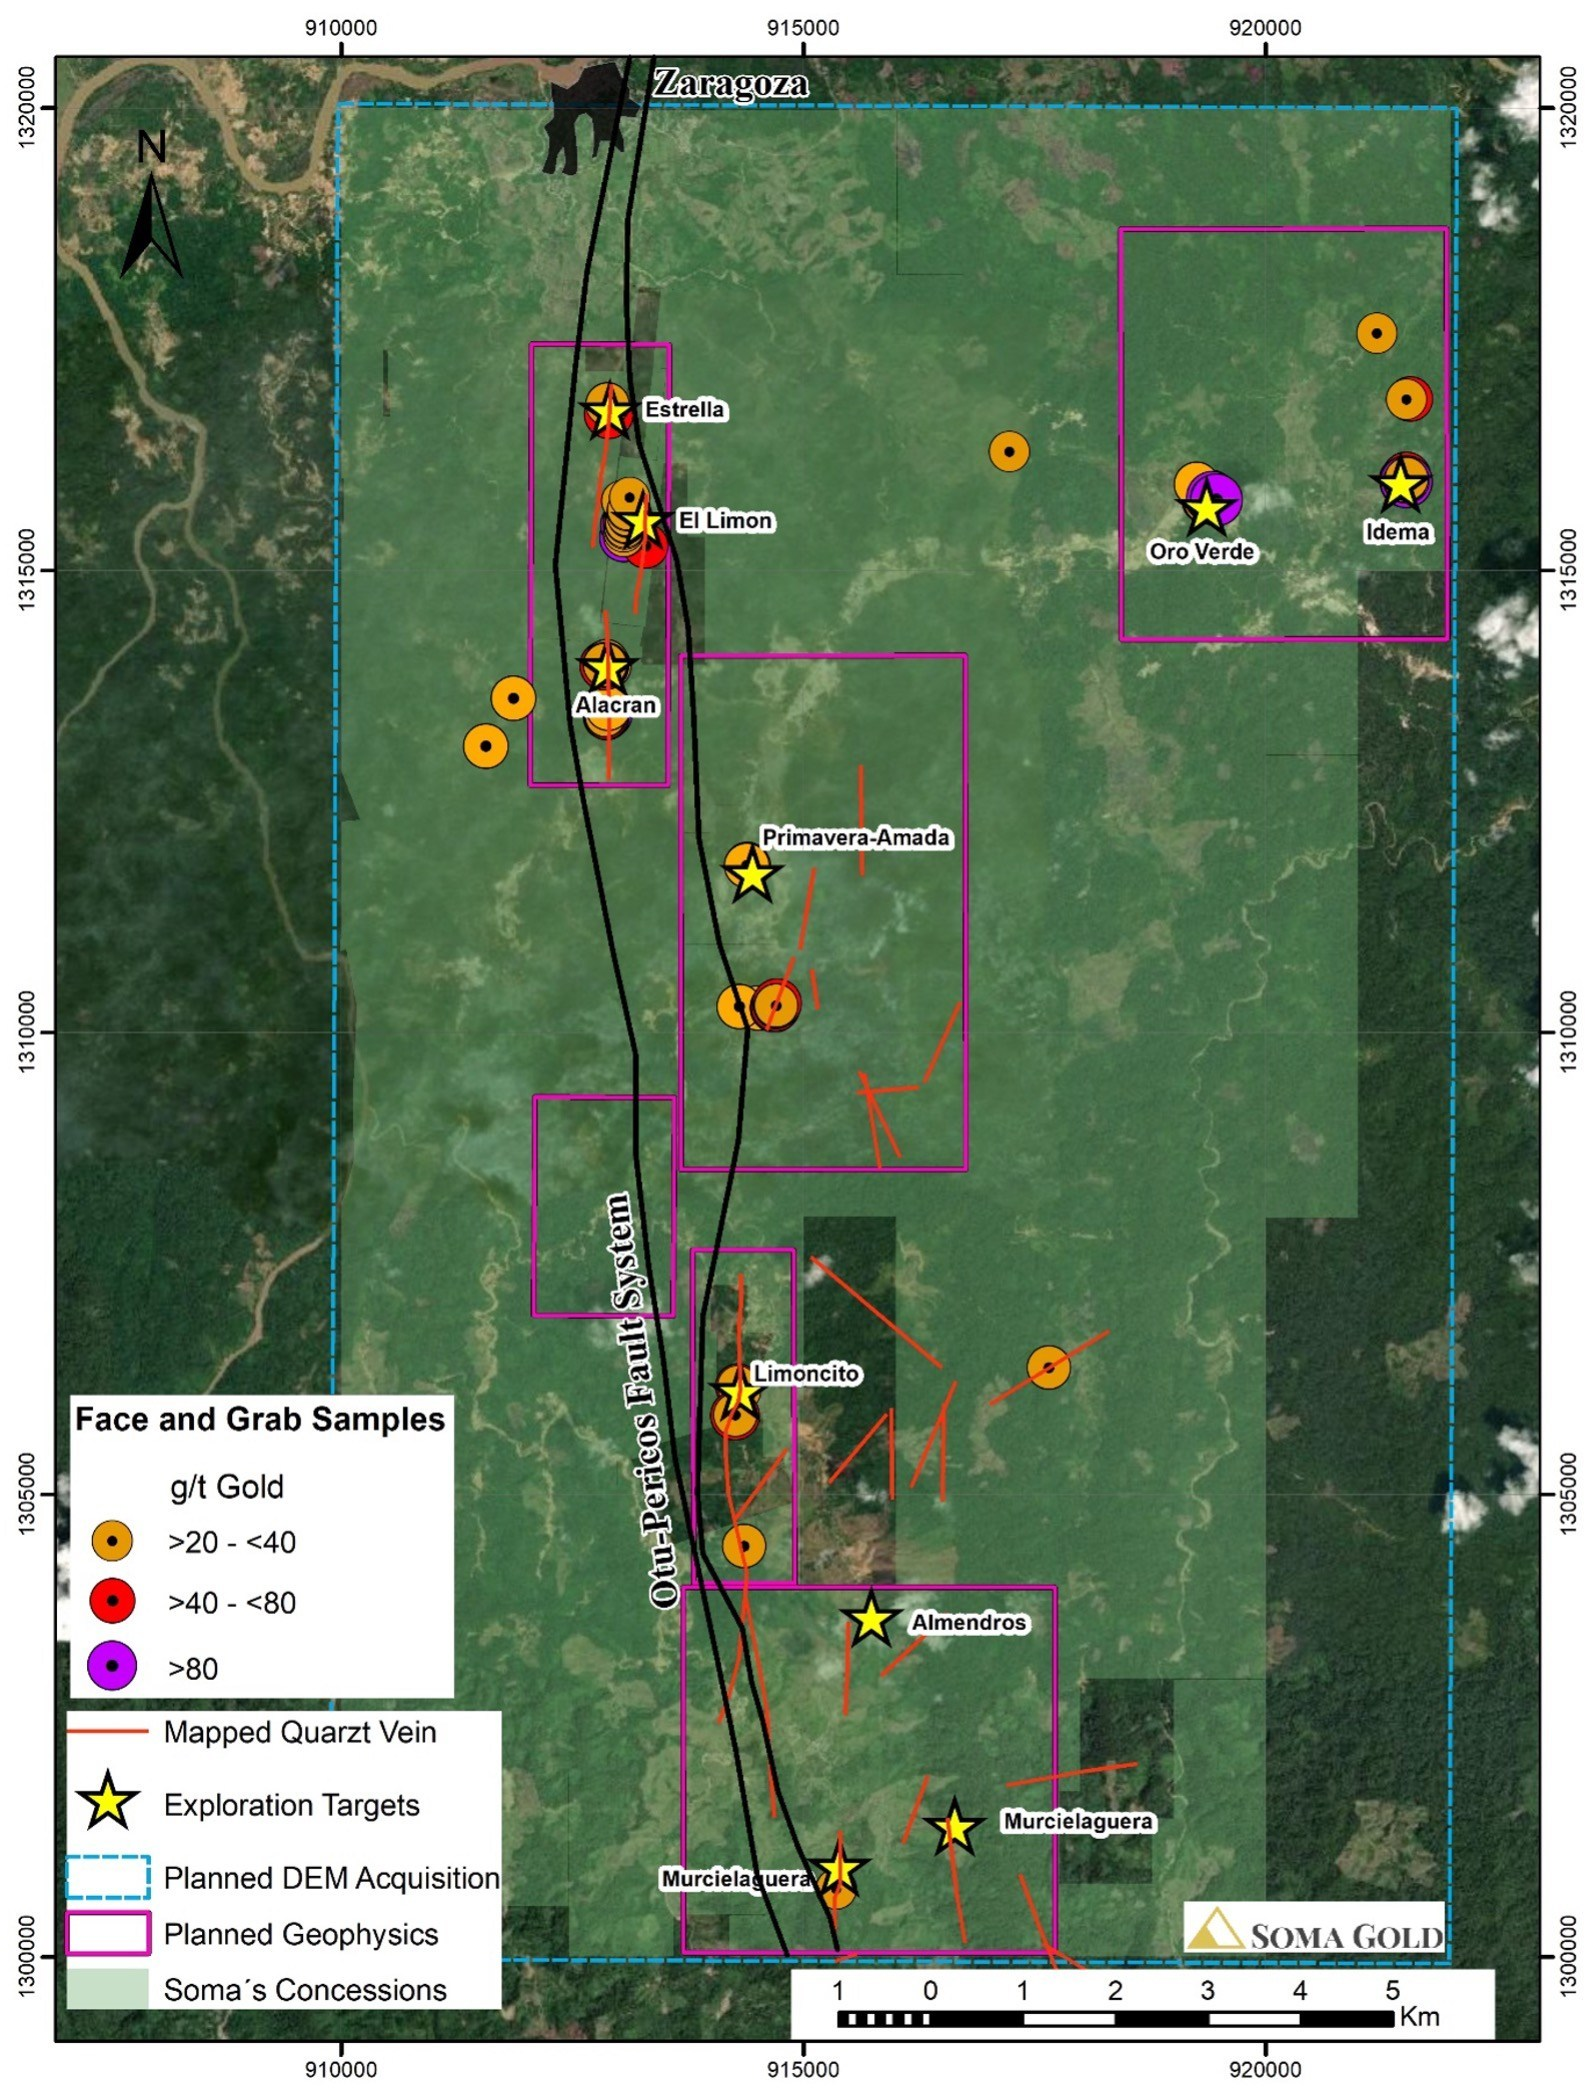 Map #1: Plan view of the exploration potential for Soma's concessions. High gold grades are mostly related to Out-Pericos fault trace. Most of the mapped veins have a well-defined NS trend. (CNW Group/Soma Gold Corp.)